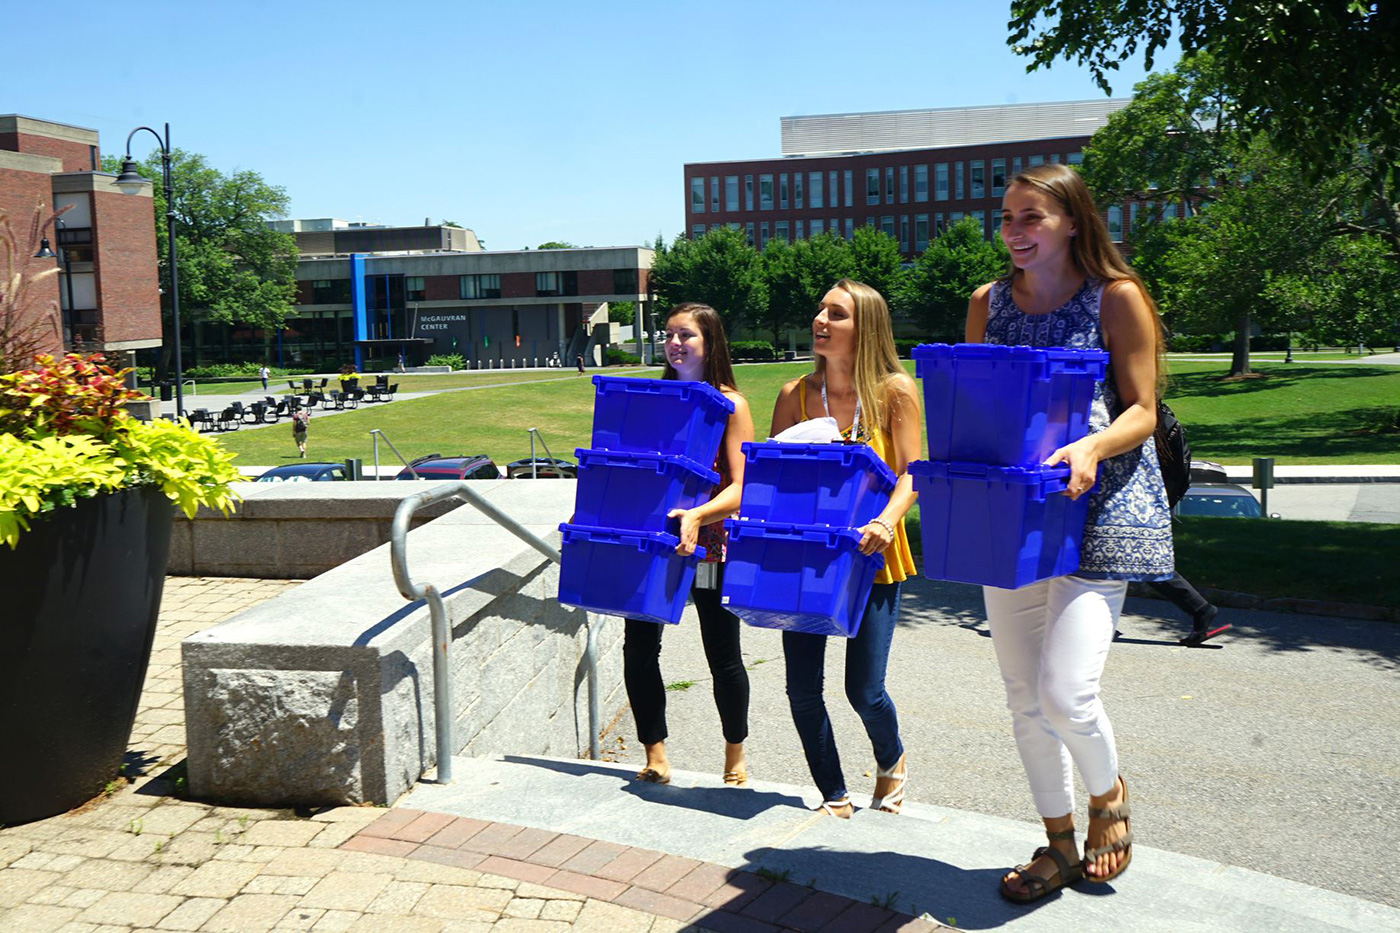 Three female UMass Lowell students carrying blue recycling bins. The UMass Lowell Sustainability team along with our partner Mill City Grows is conducting a Community Supported Agriculture (CSA) program to provide the UMass Lowell community with locally grown, farm fresh produce to promote sustainable urban agriculture and ensure community well-being.